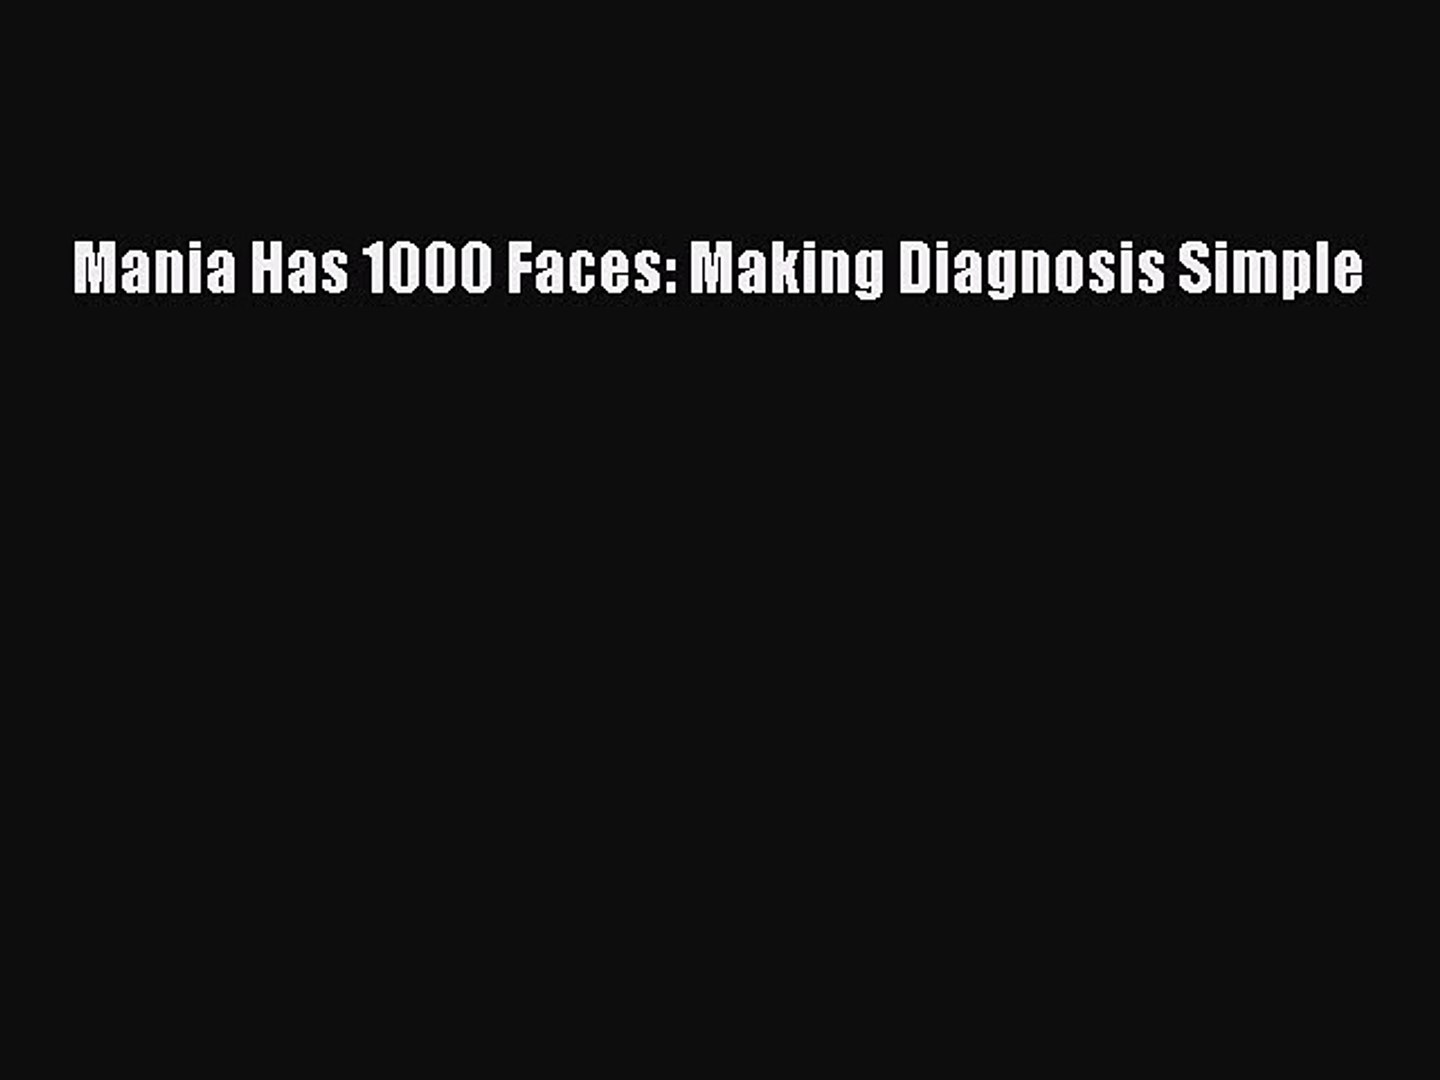 Download Mania Has 1000 Faces: Making Diagnosis Simple Ebook Online